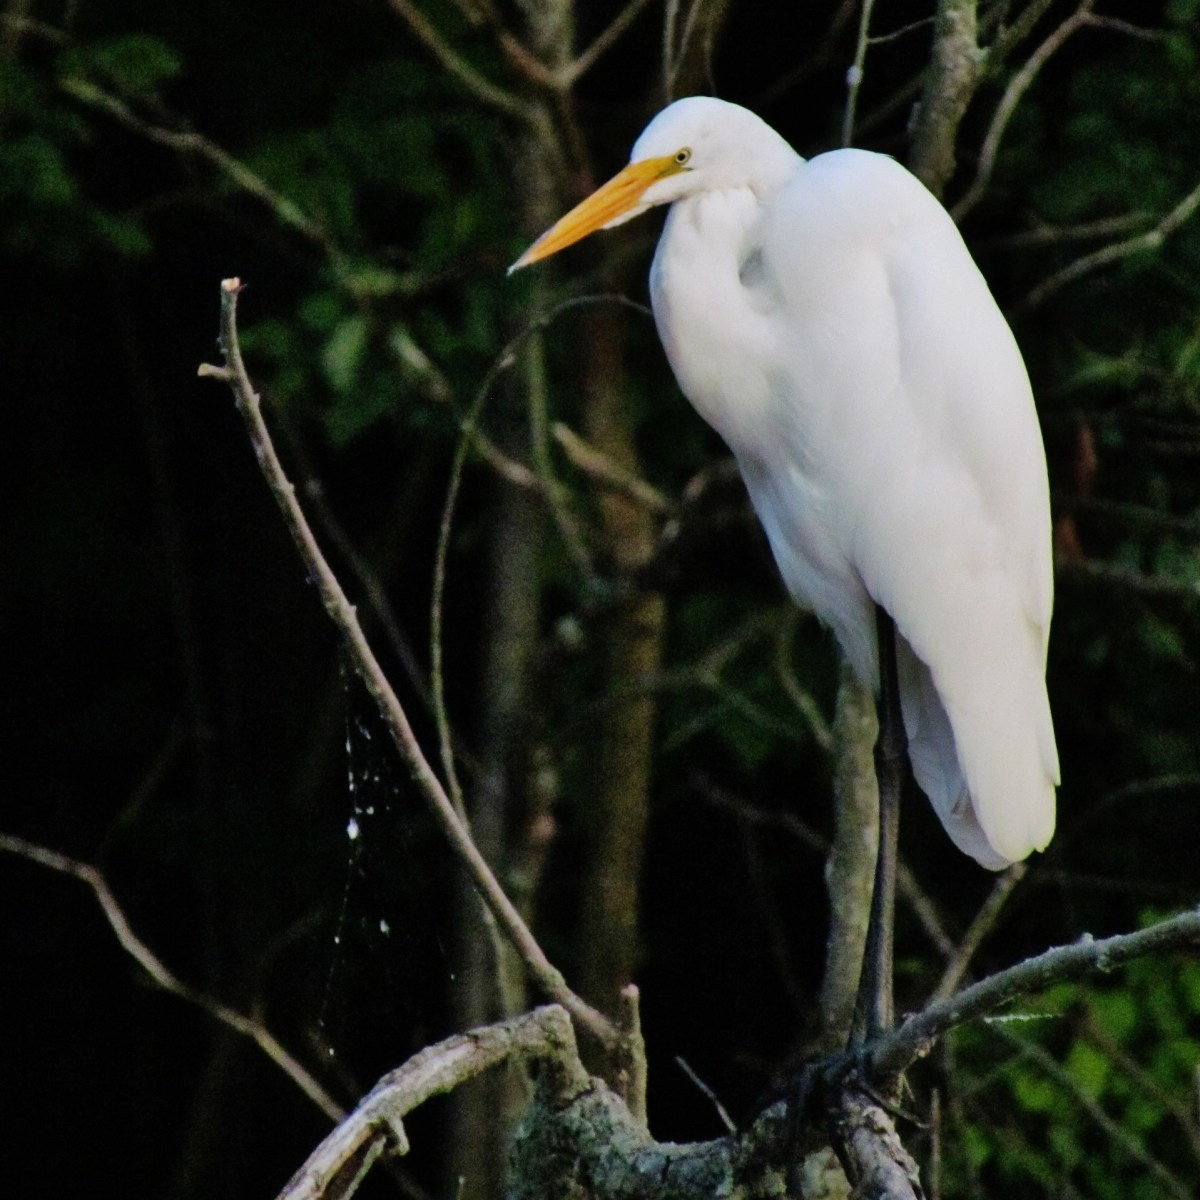 A Great Egret looks down from its perch in a leafless tree